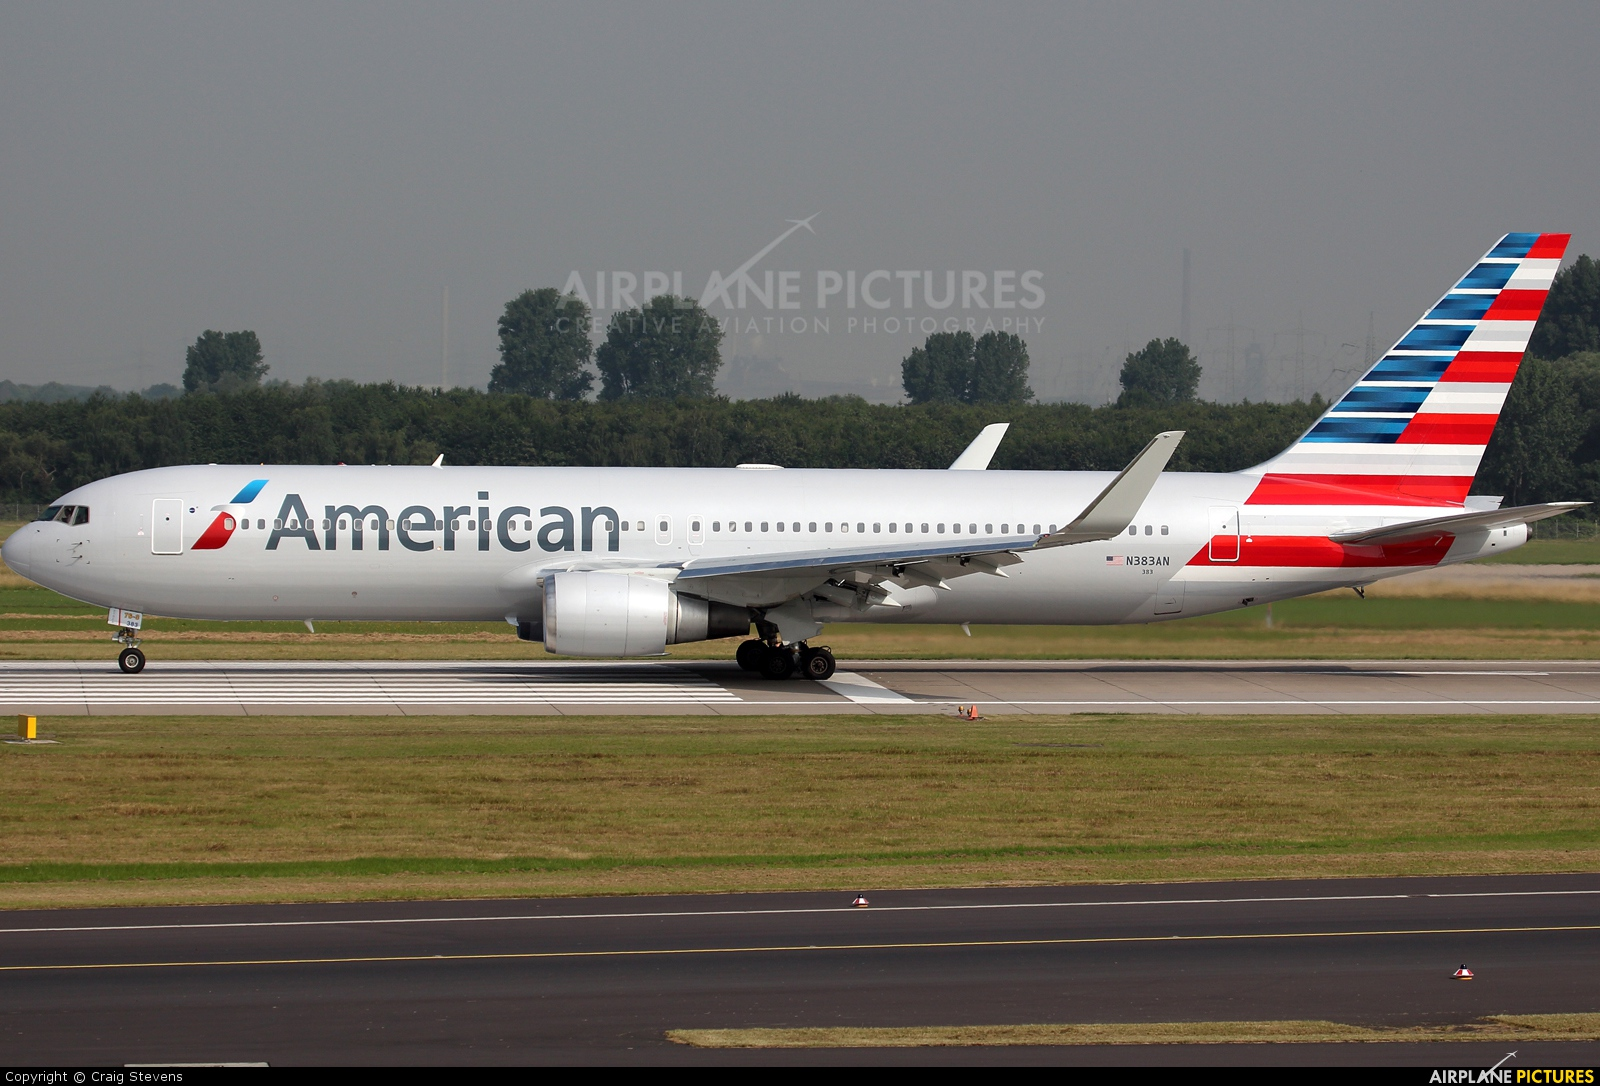 N383AN - American Airlines Boeing 767-300 at Düsseldorf ...